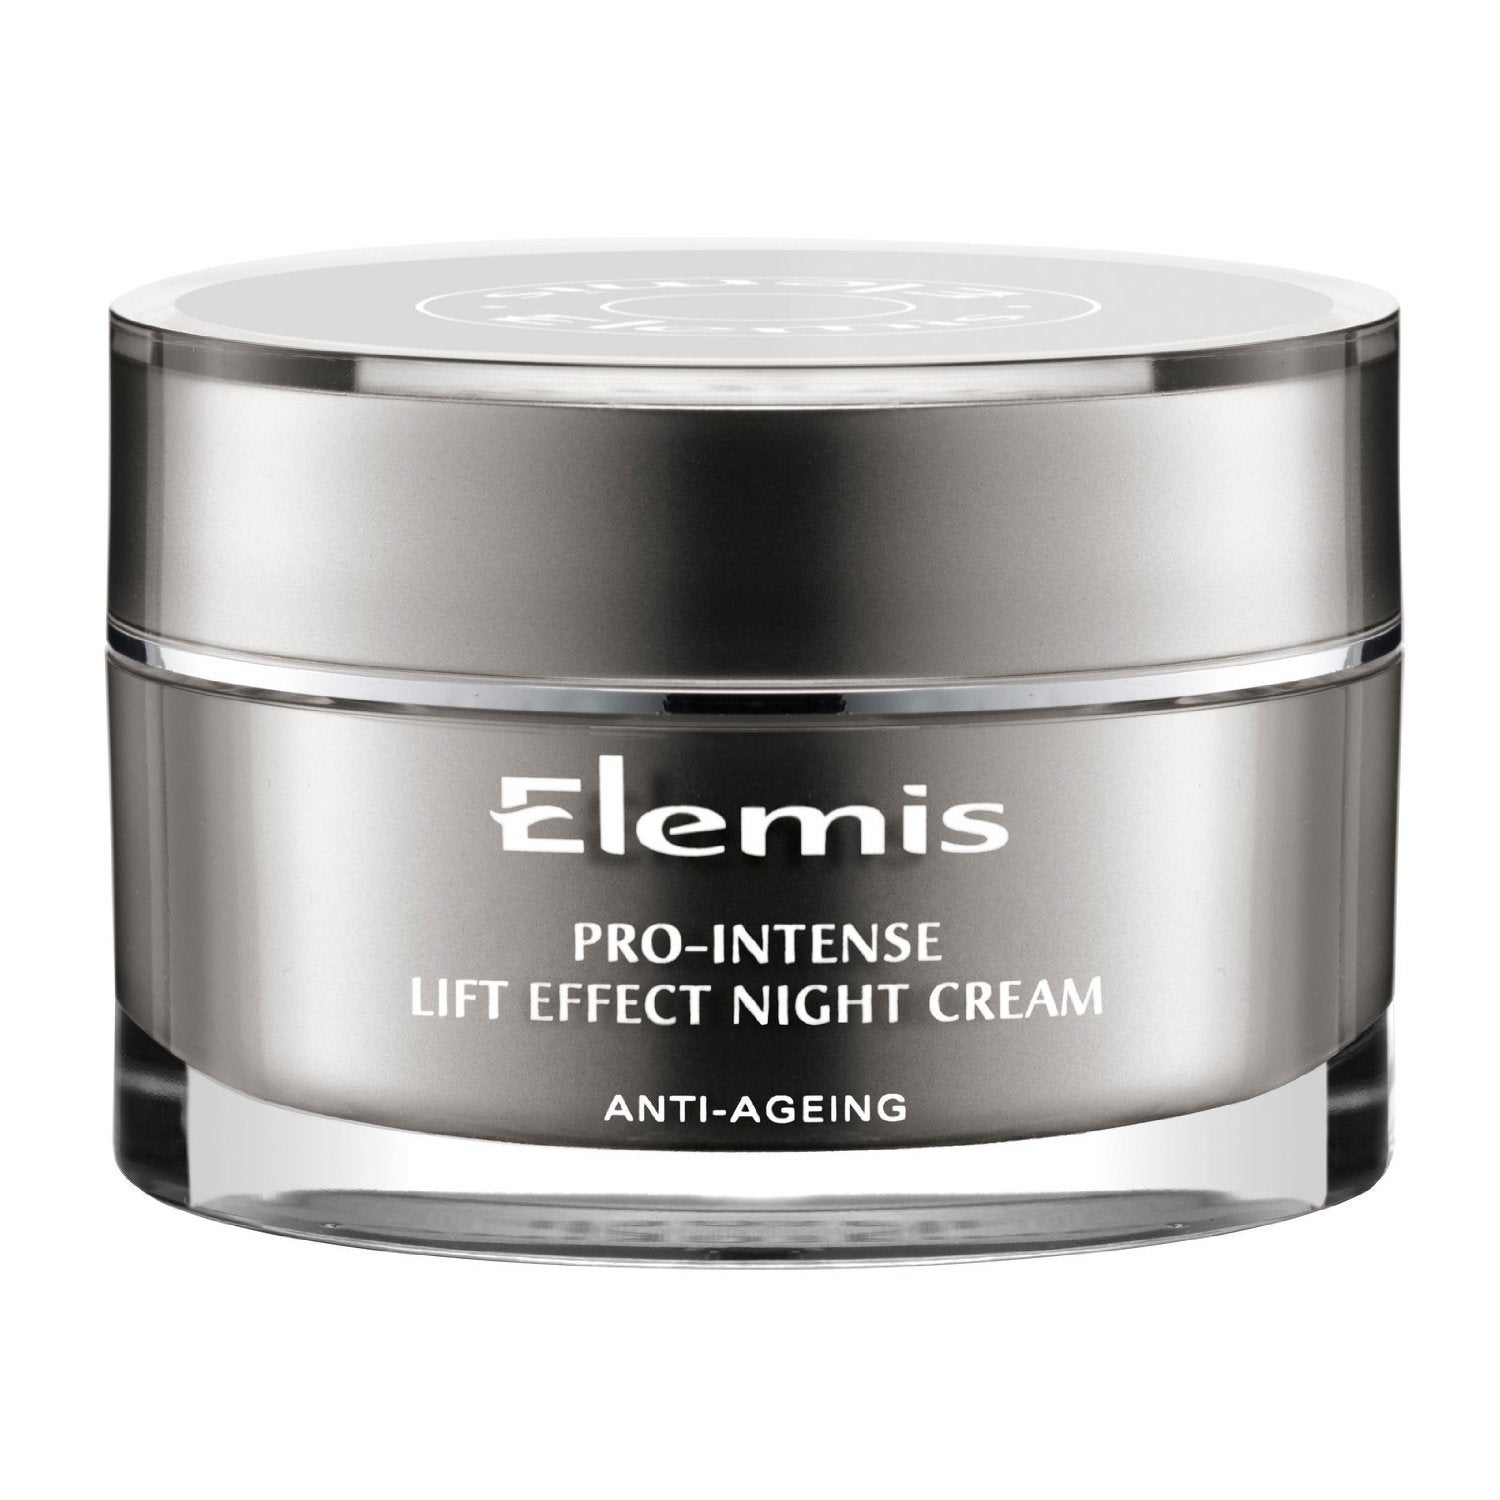 ELEMIS Facial Shaping Pro-Intense Lift Effect Super Syste...